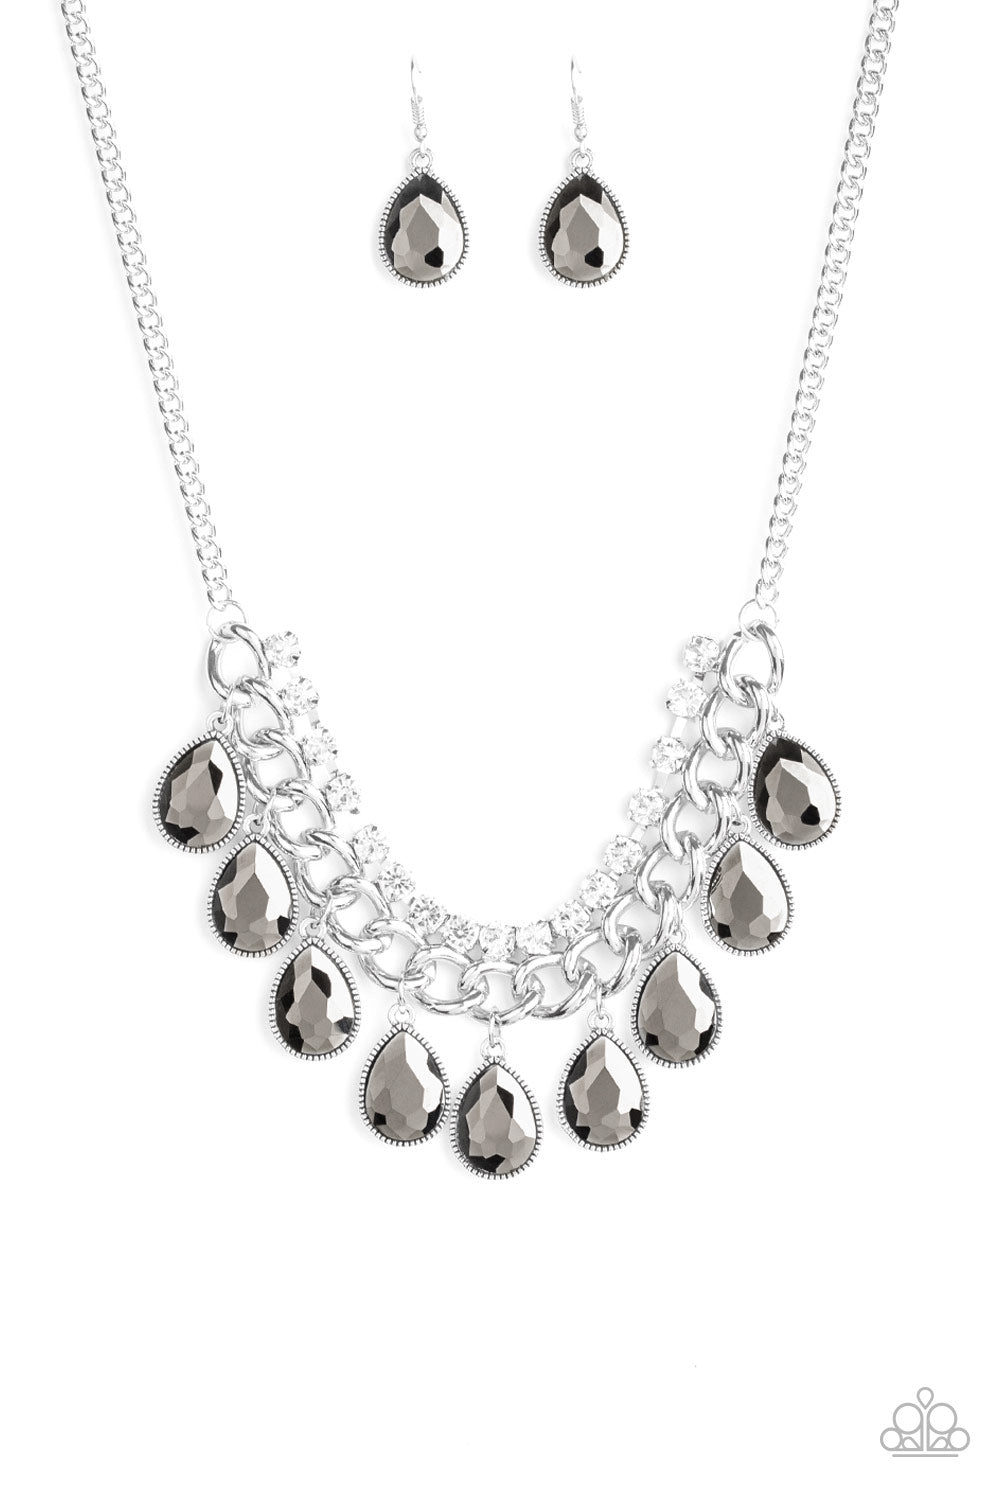 All Toget-HEIR Now Silver Necklace